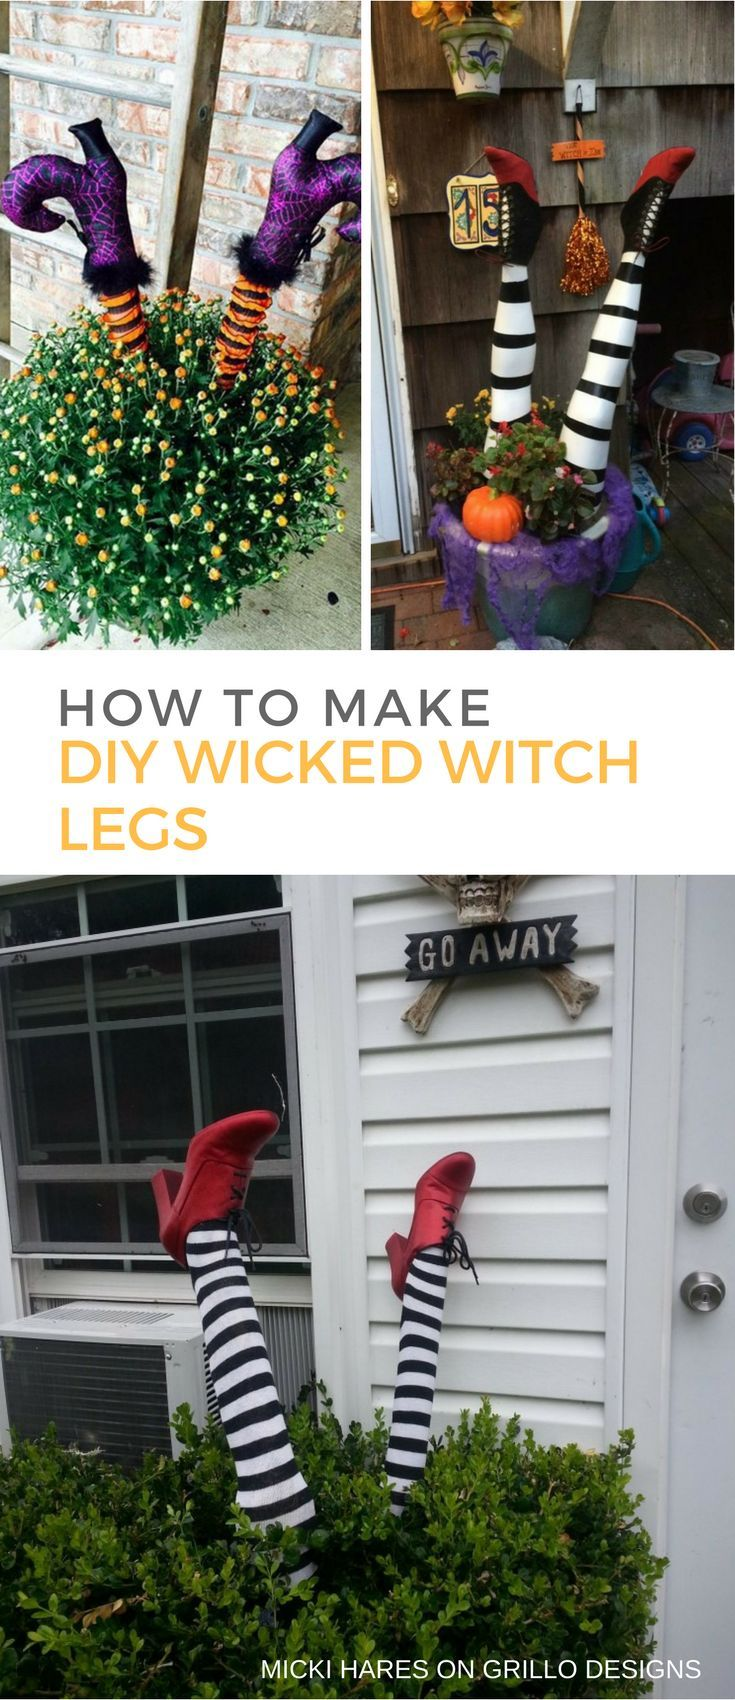 These DIY wicked witch legs are the perfect freaky decor for Halloween. // Halloween Inspiration 2016